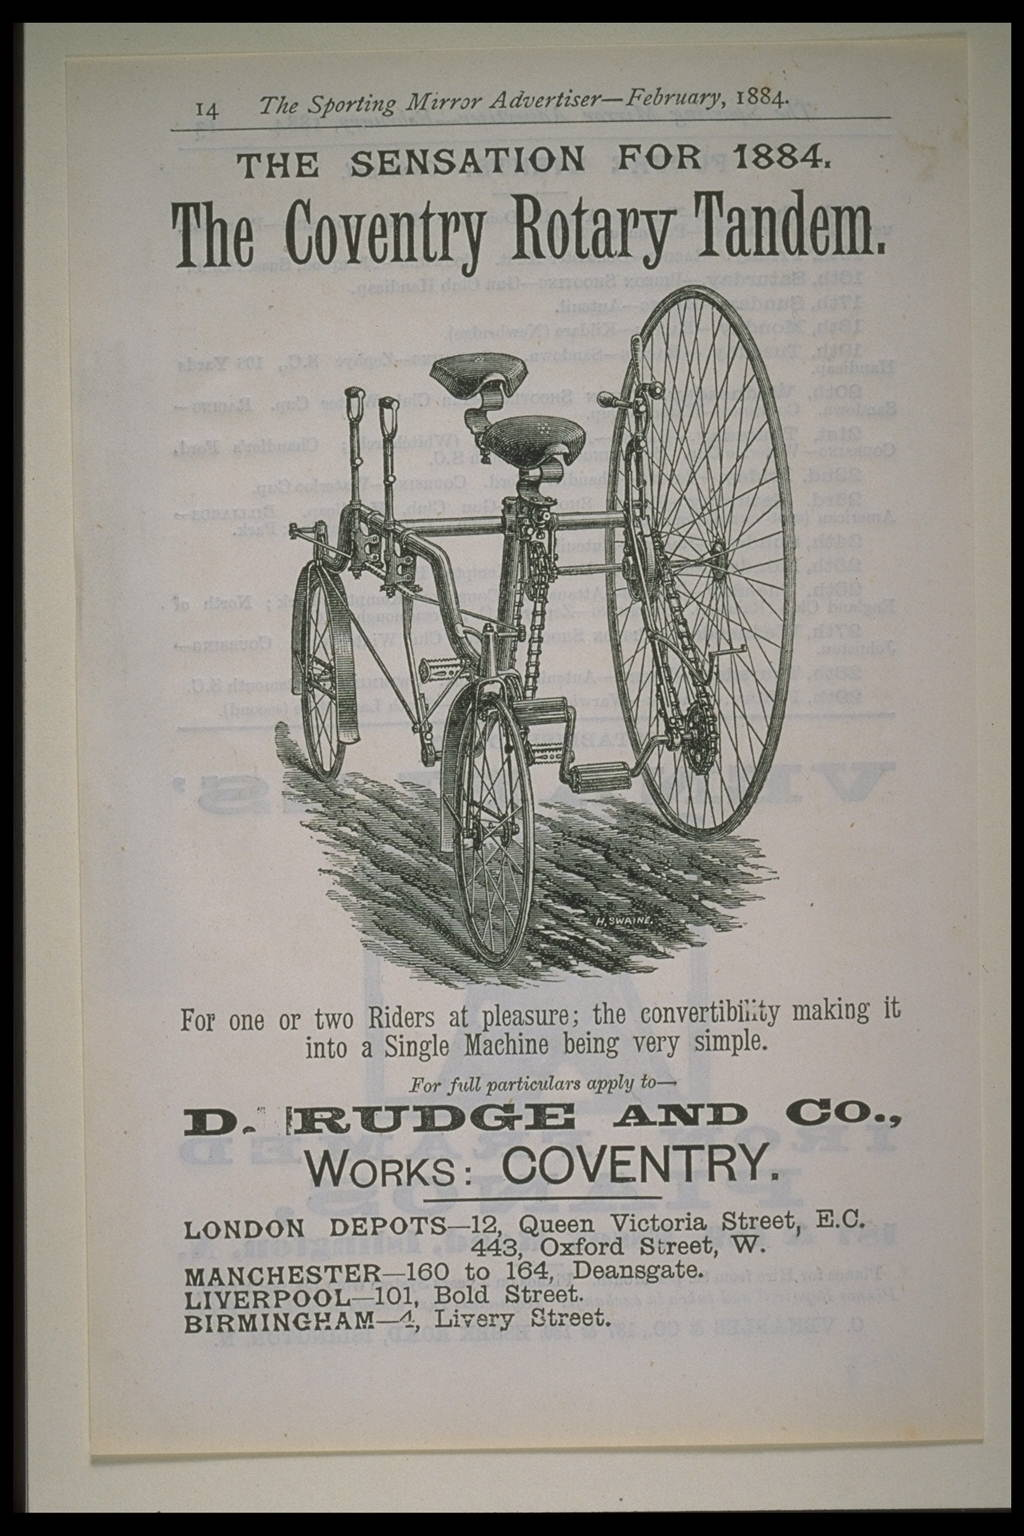 The Coventry Rotary Tandem bicycle